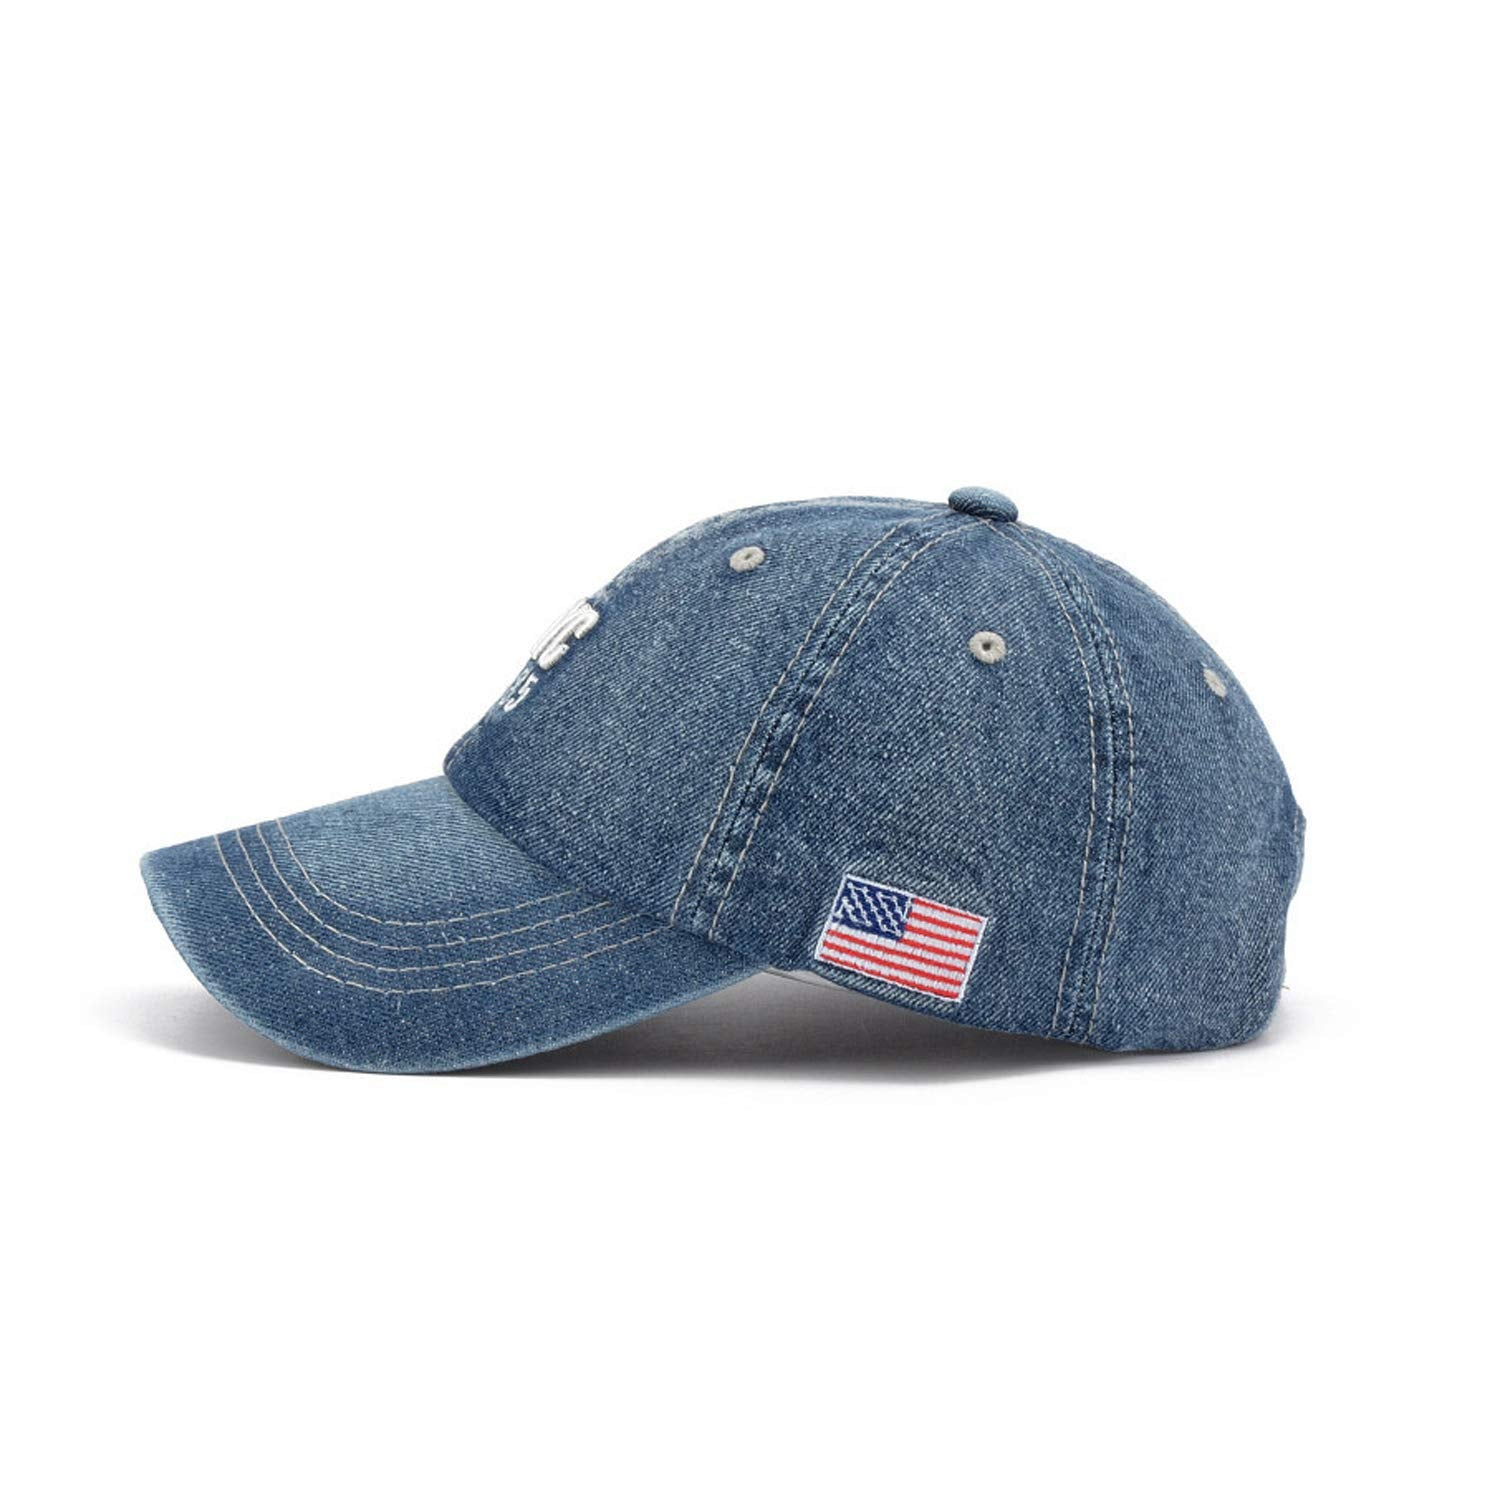 CORIRESHA Classic Embroidery Denim Baseball Cap